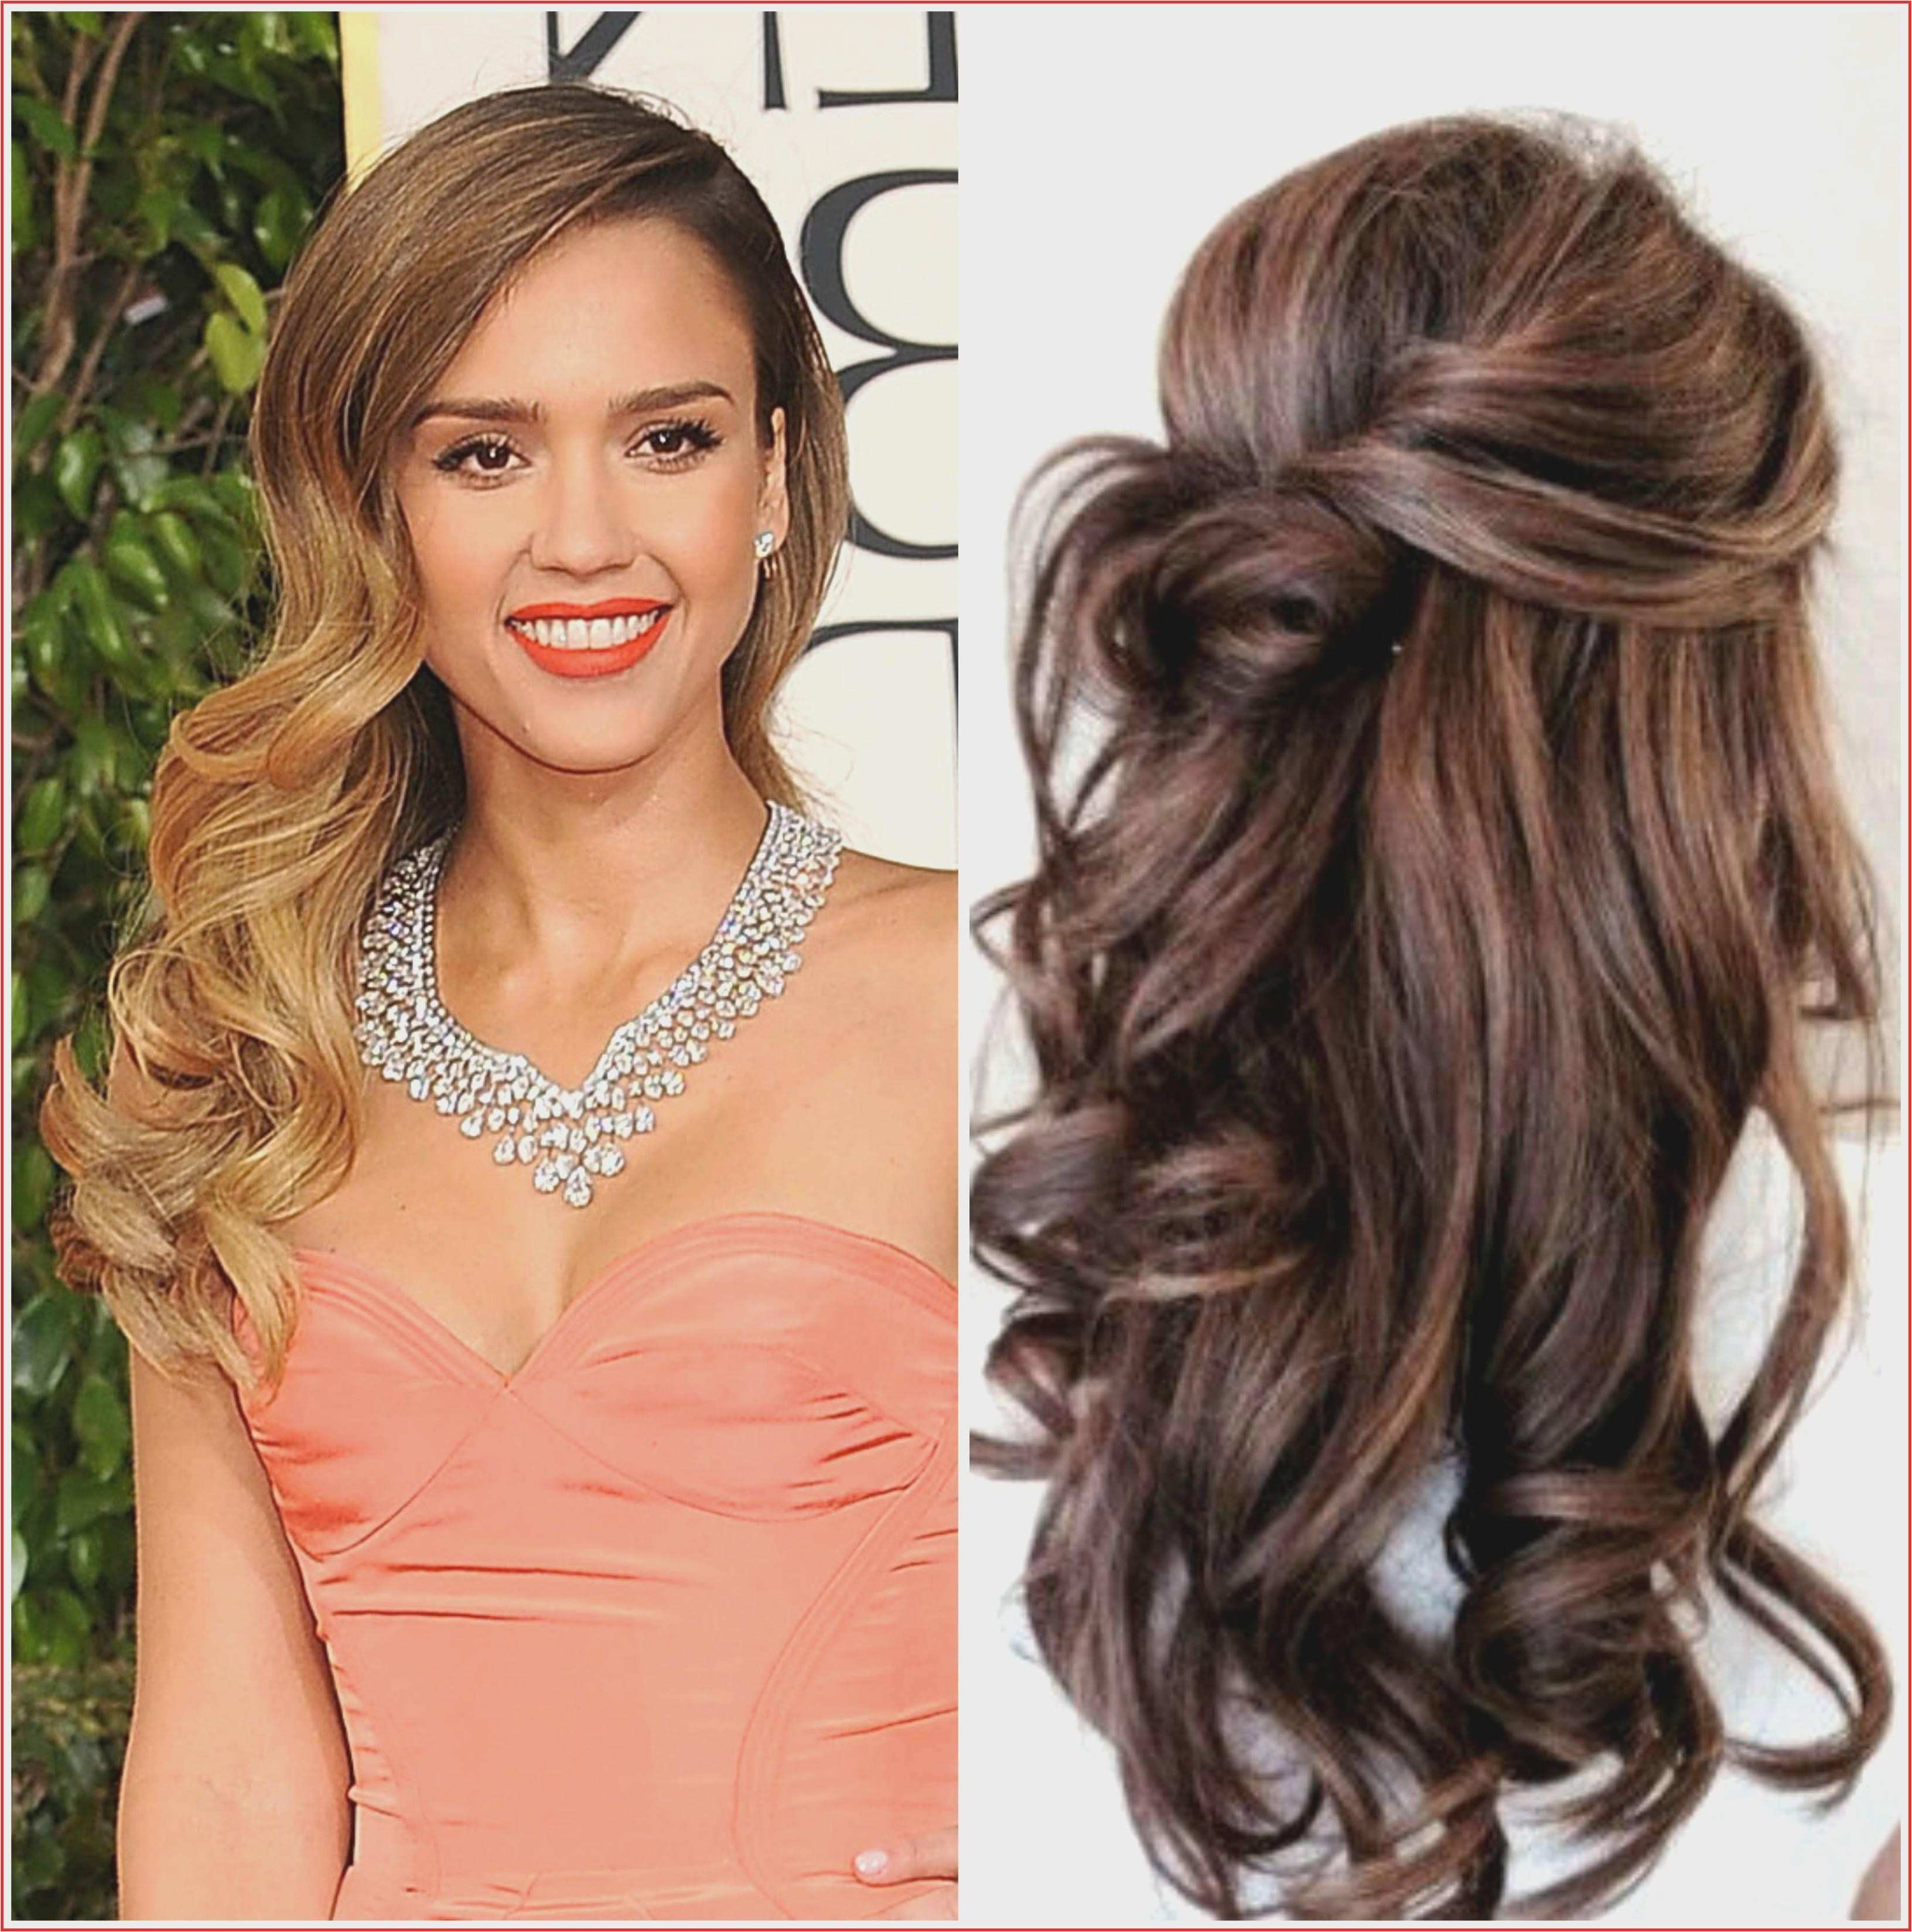 Girls Hairstyles for Parties Lovely Luxury Modern Hairstyles for Teenage Girls Ideas Girls Hairstyles for